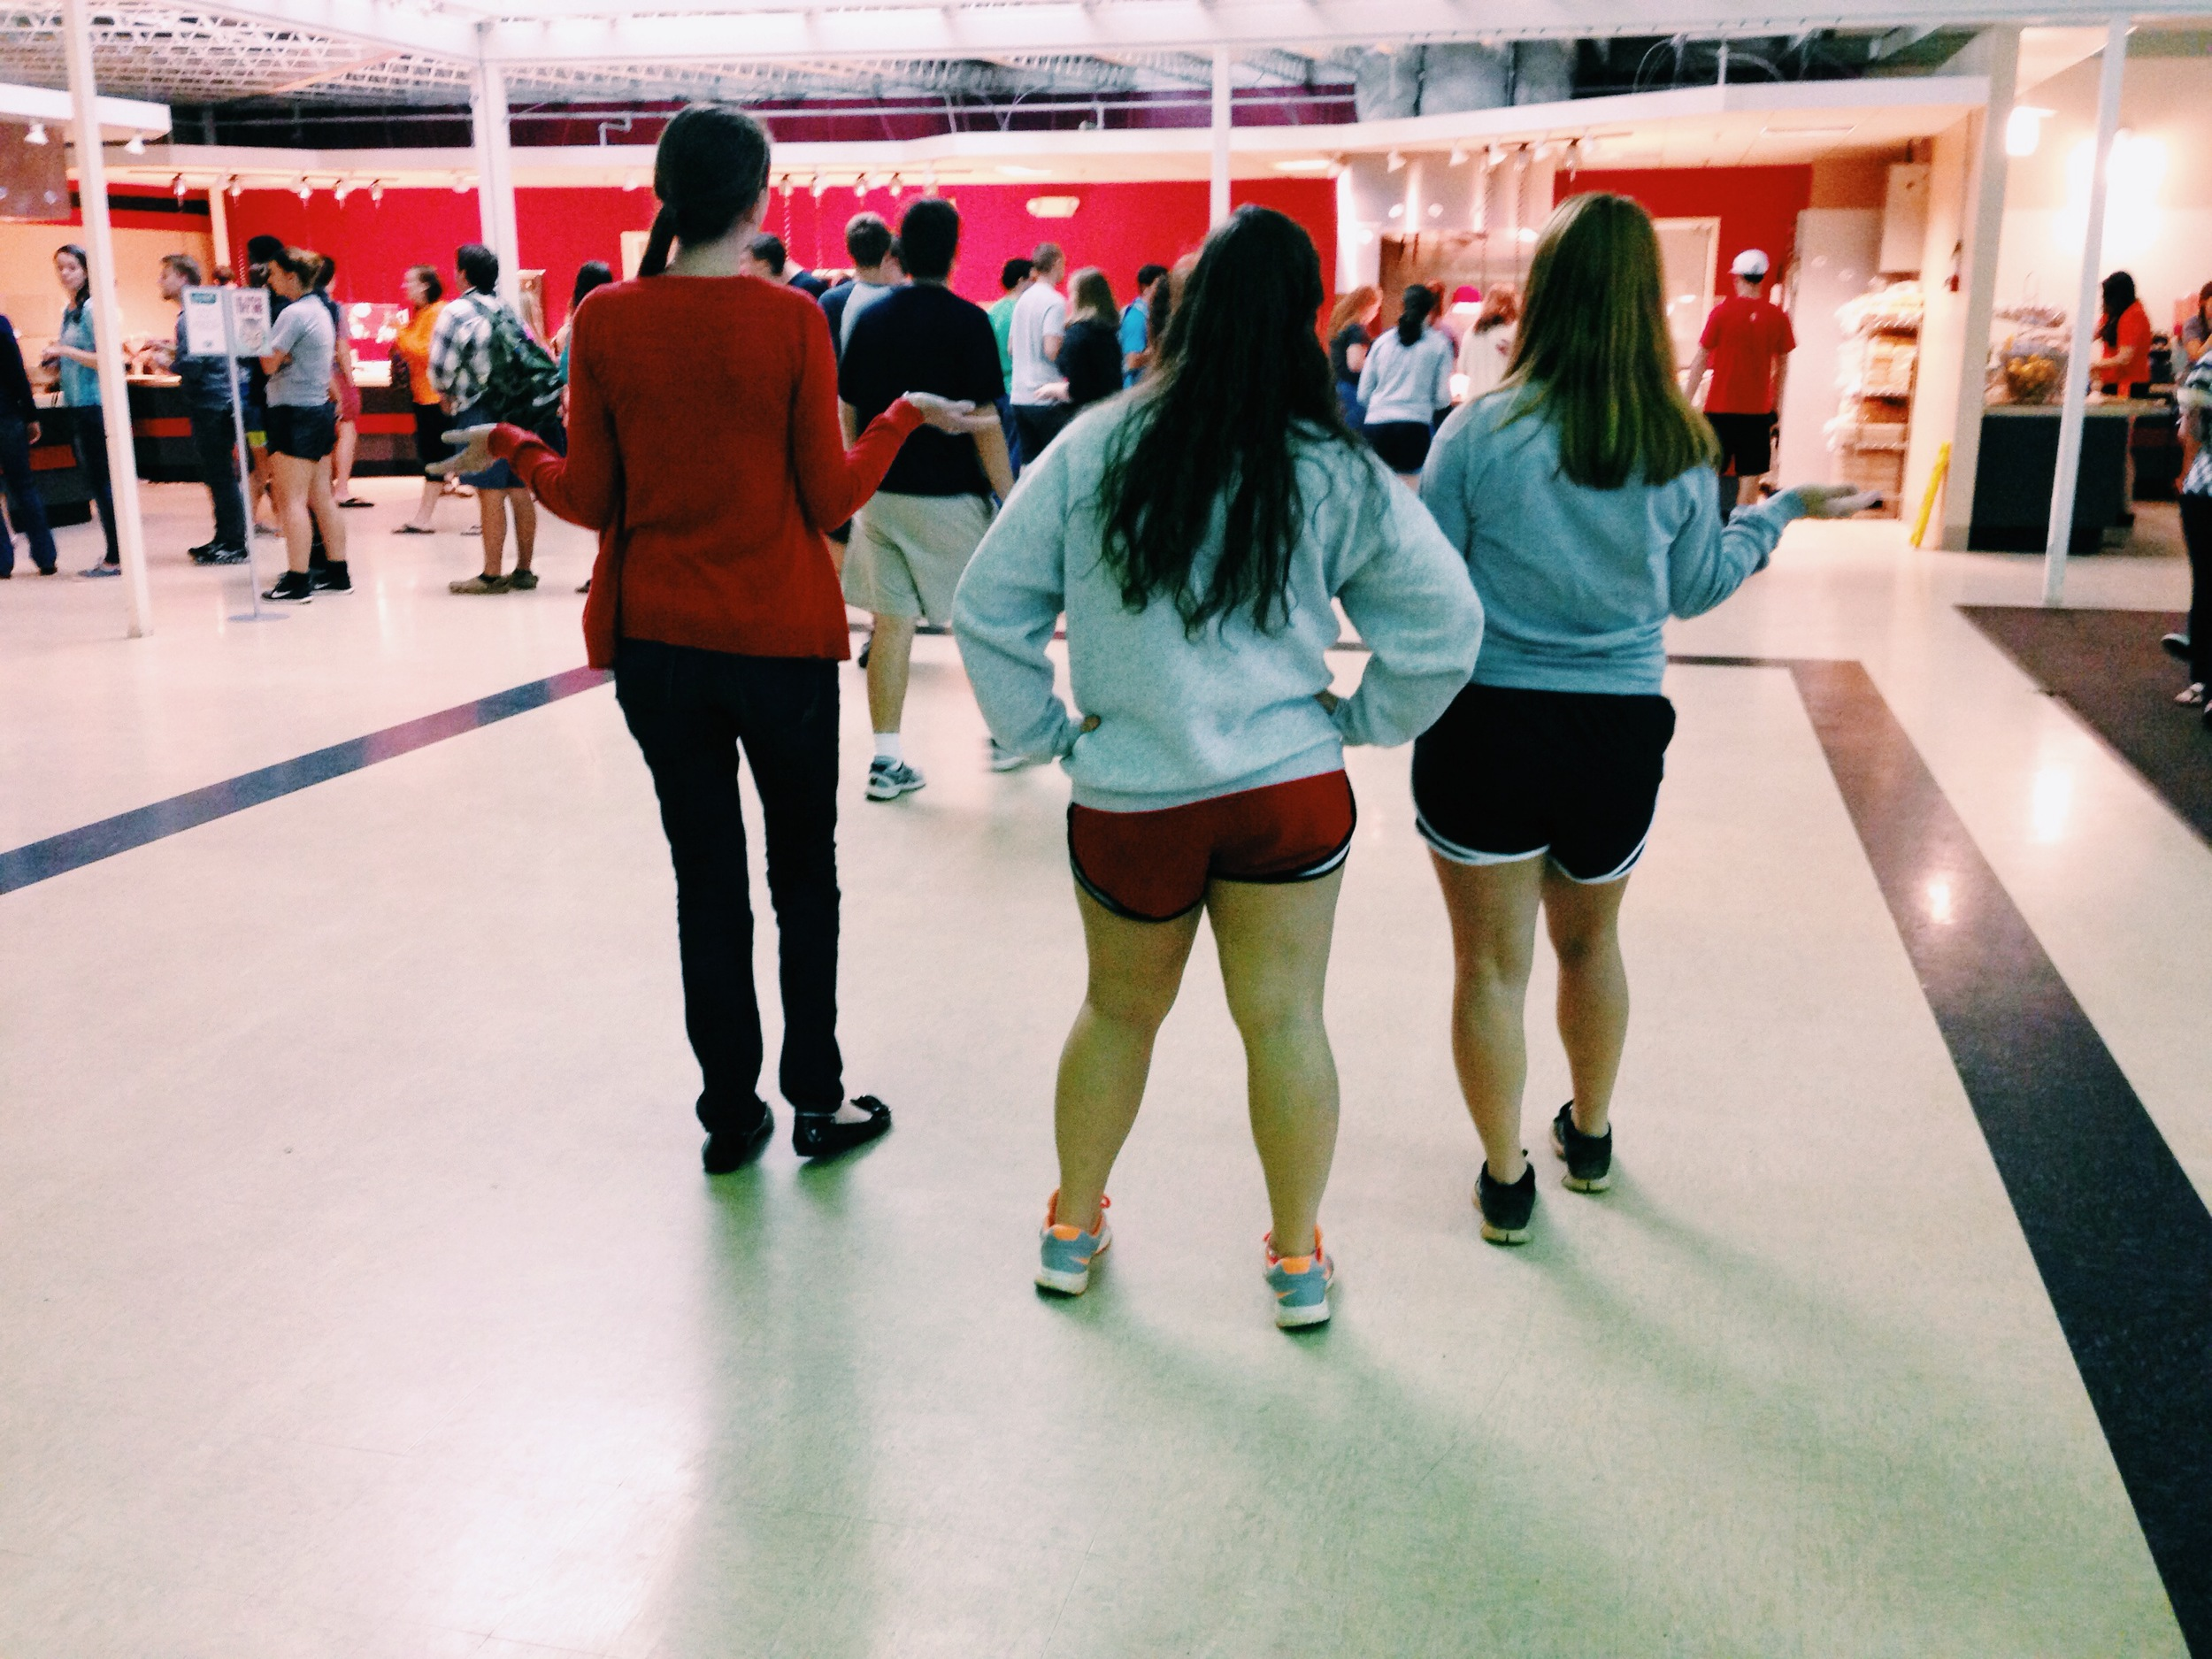 Courtney, Mandy, and Kaitlyn search for the fastest moving caf lines.